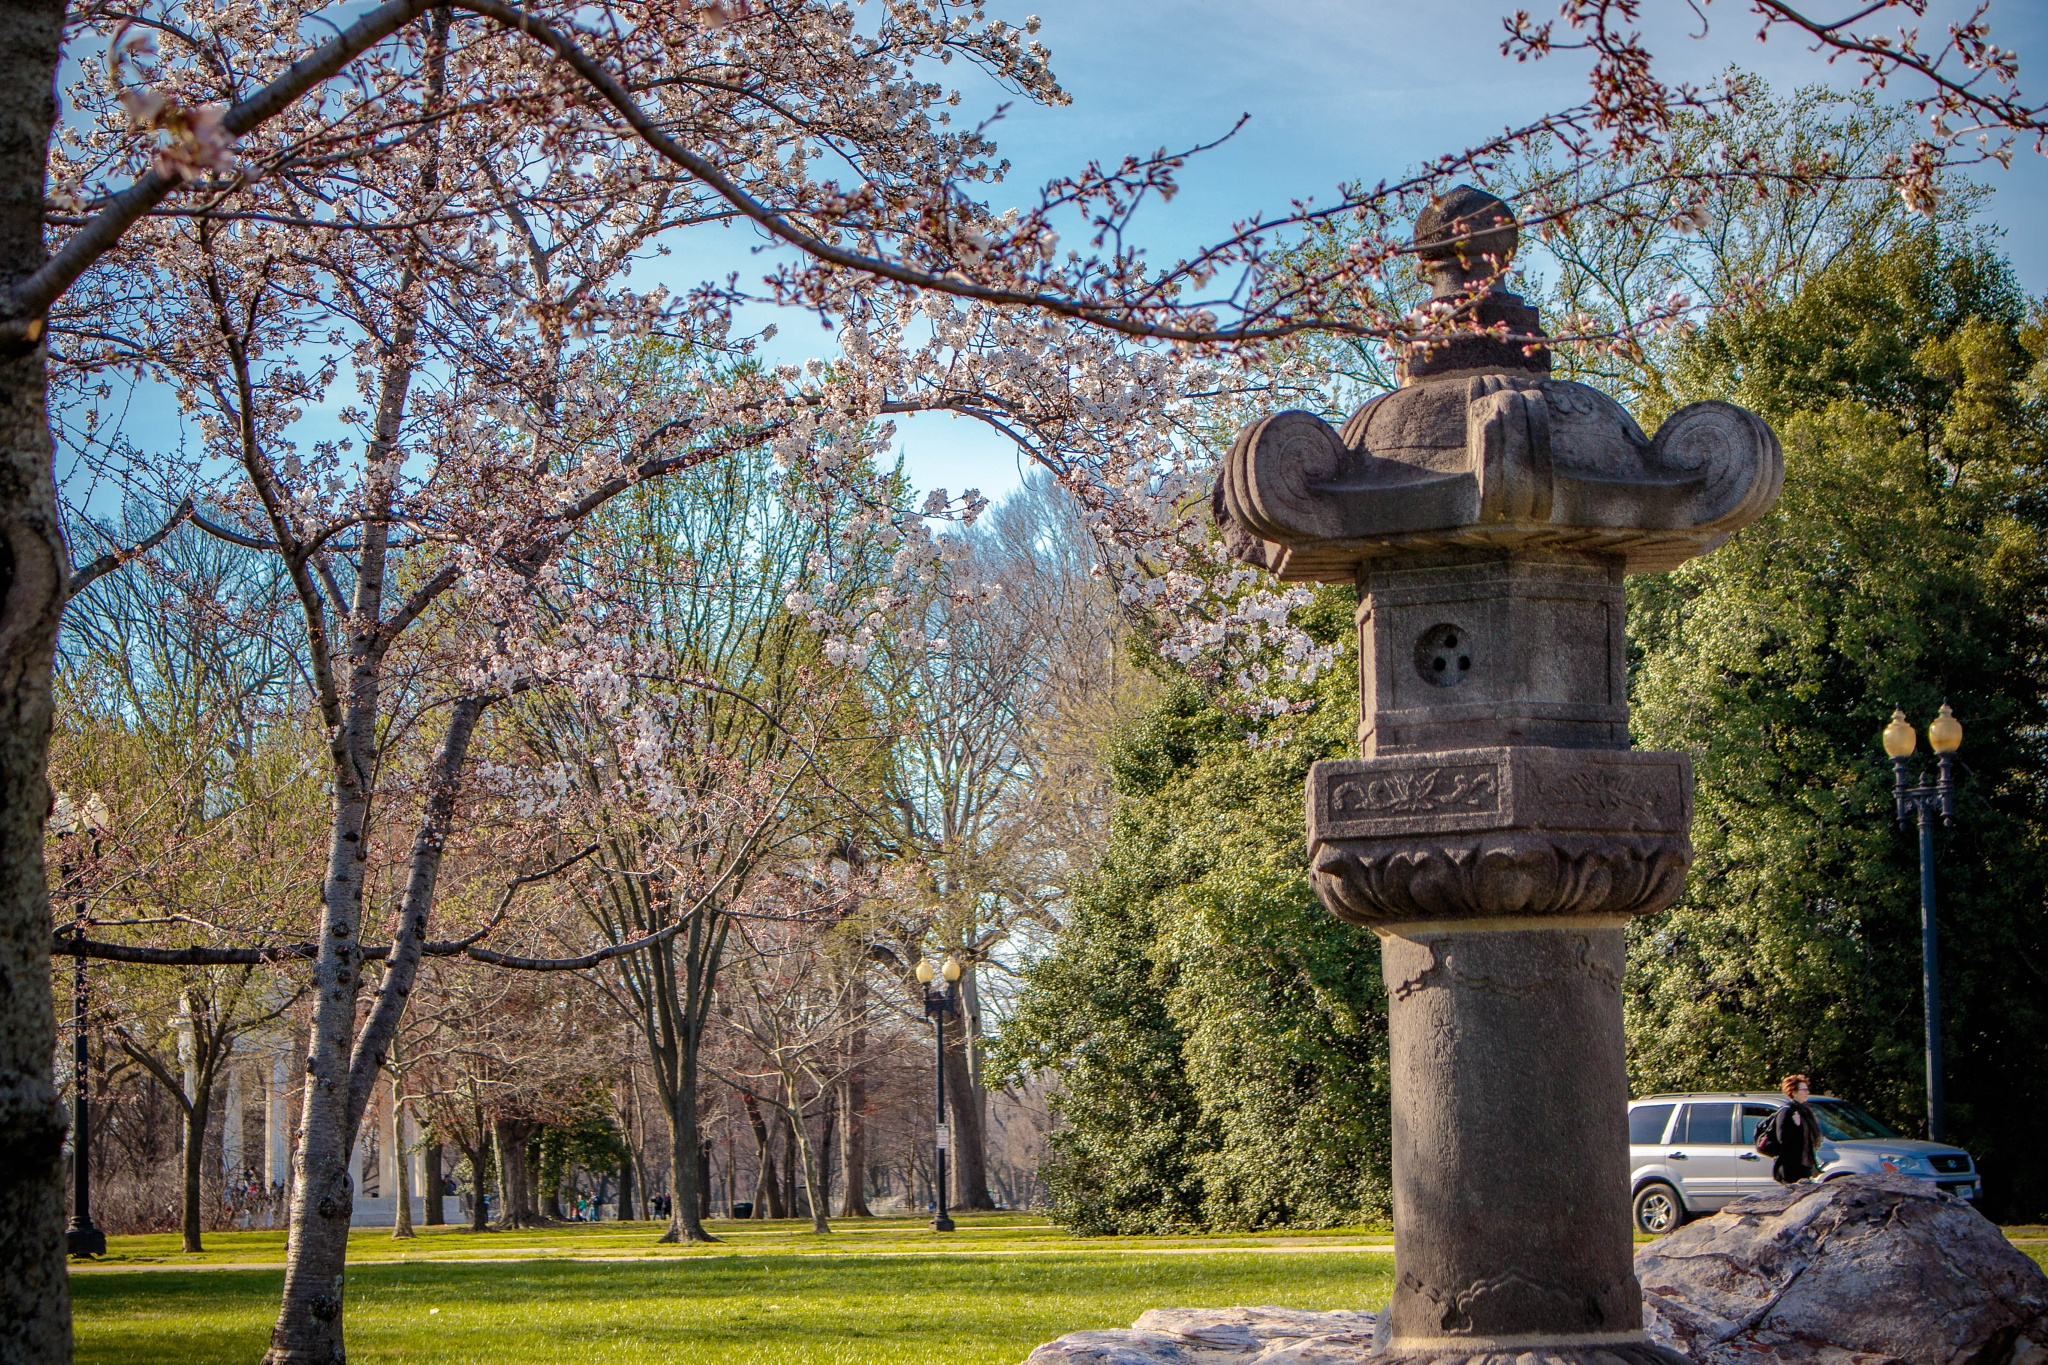 Ancient Cherry Tree Marker by drchad480